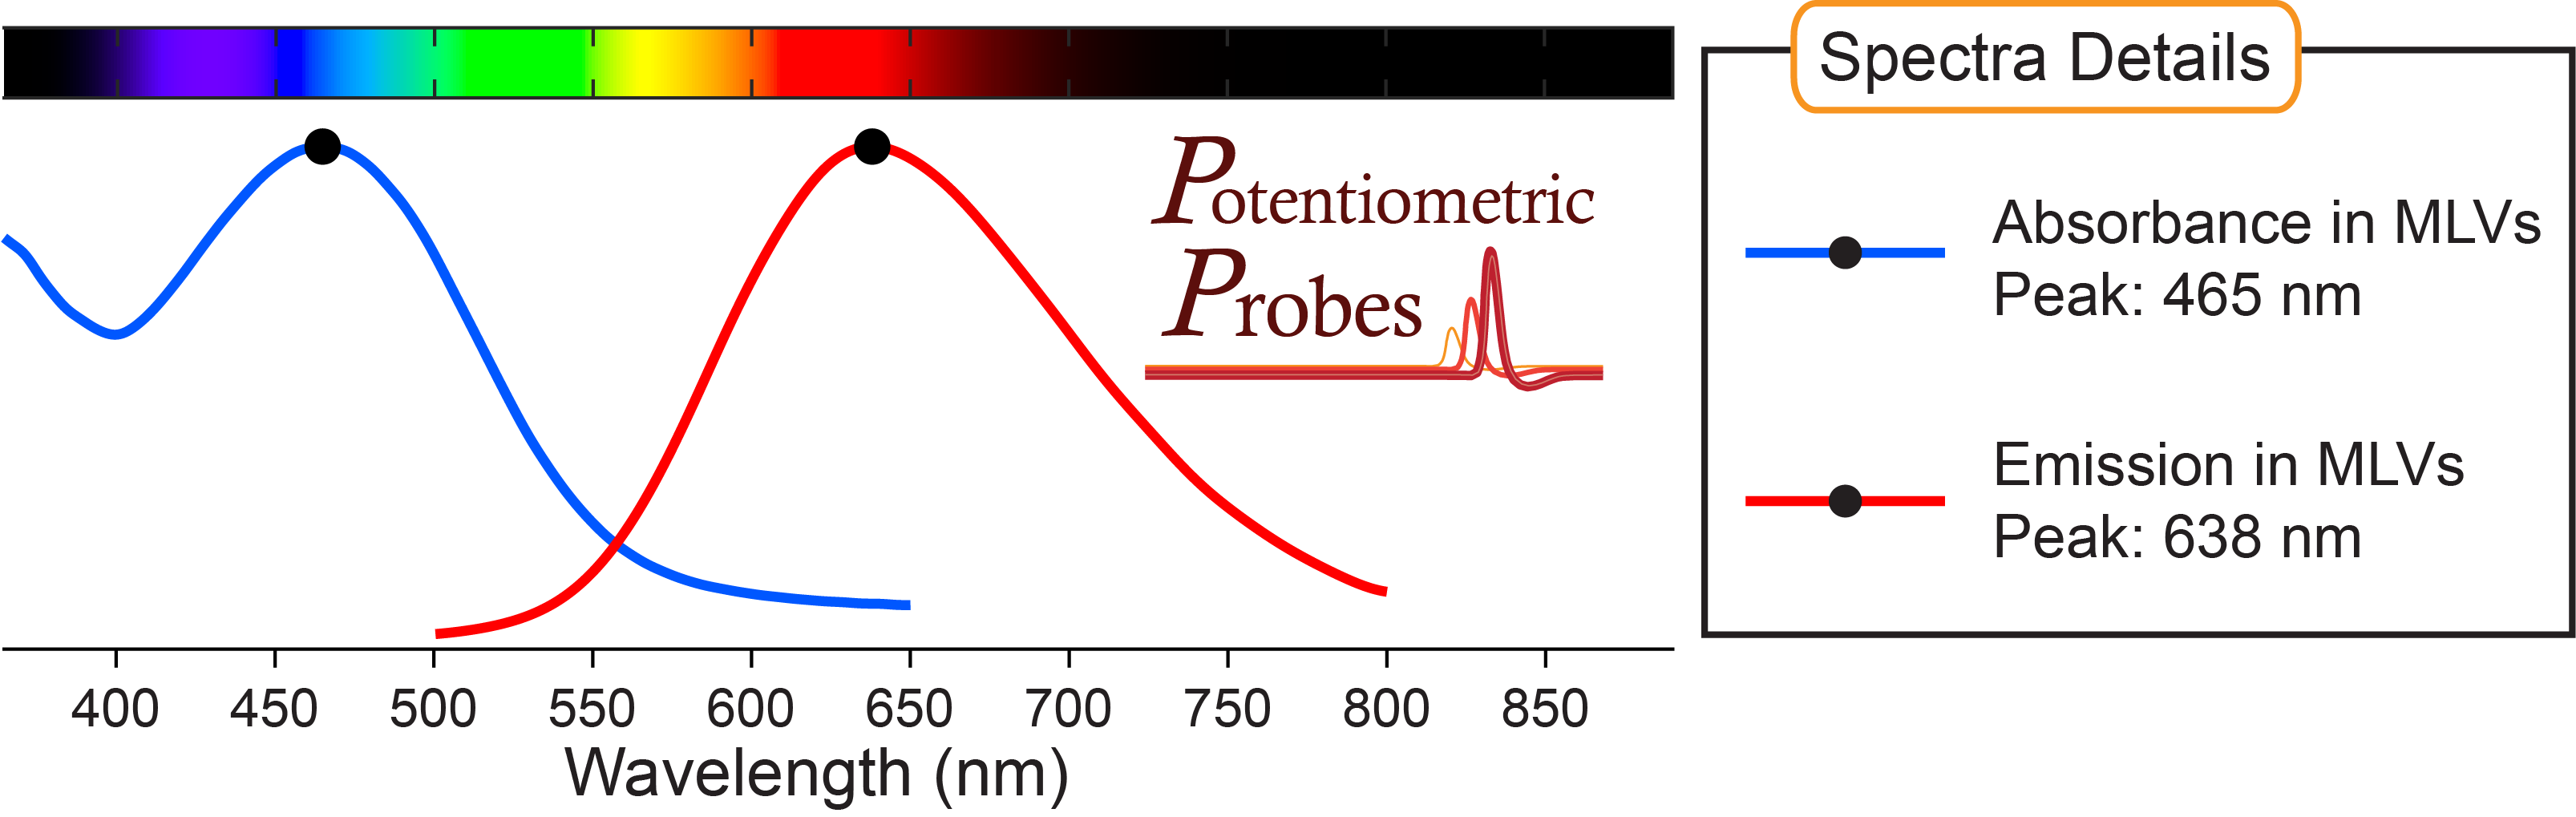 Spectra of voltage-sensitive dye Di-4-AN(F)EP(F)PTEA from Potentiometric Probes